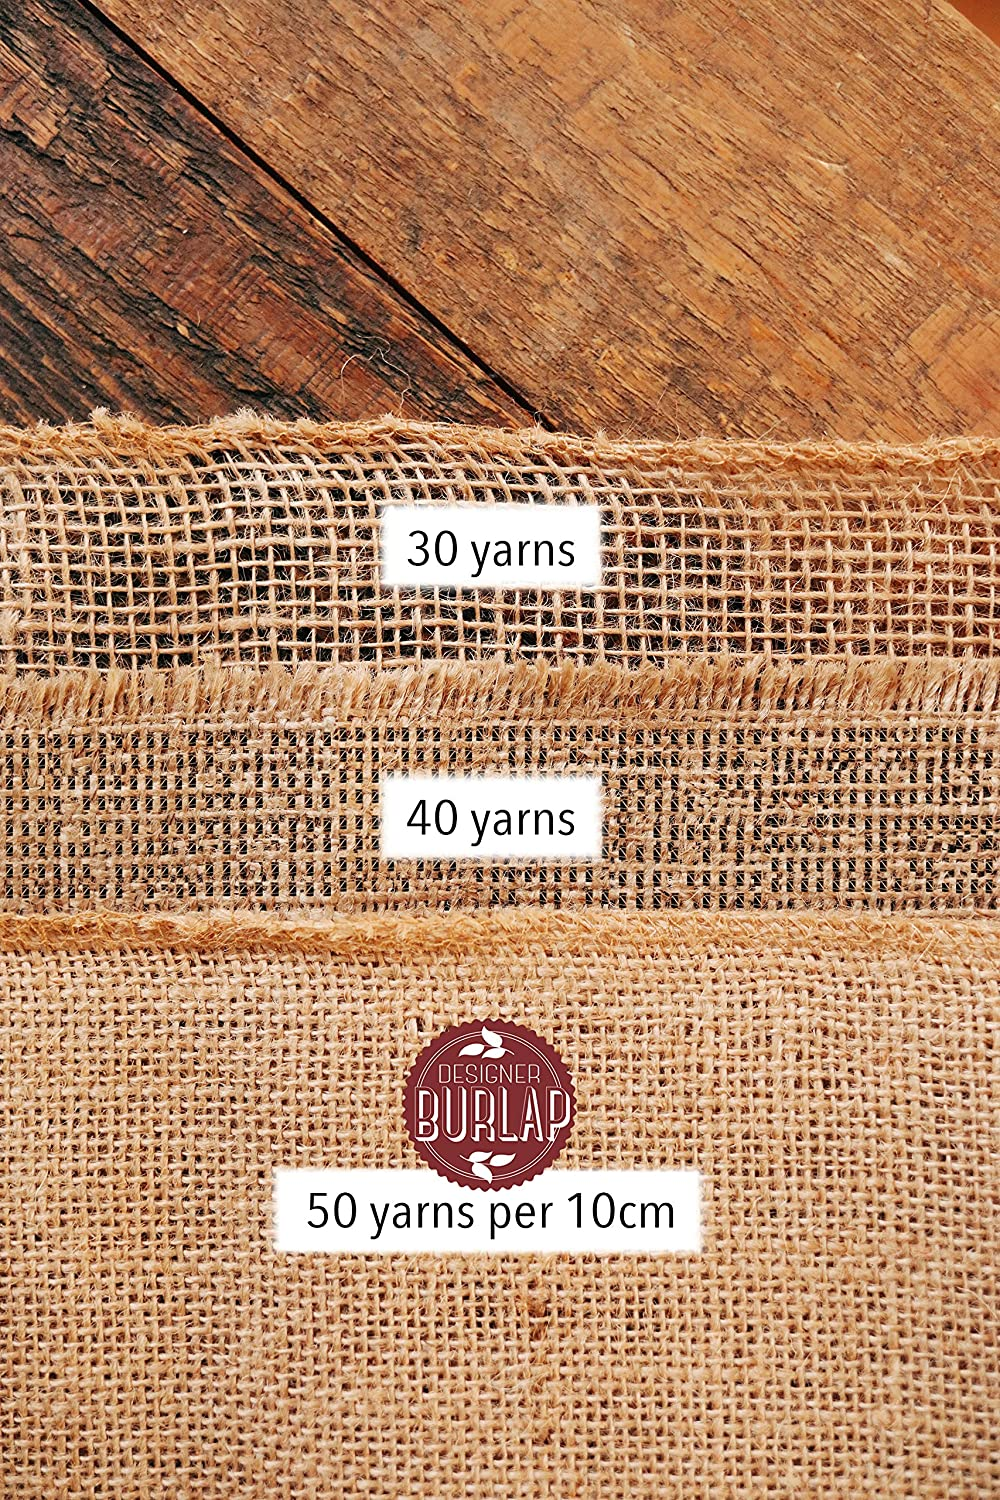 Burlap Table Runner - 14 Inch Wide X 10 Yards Long Burlap Roll - Burlap Fabric Rolls. A No-Fray Burlap Runner with Overlocked and Sewn Edges for Rustic Weddings, Decorations and Crafts!: Home & Kitchen